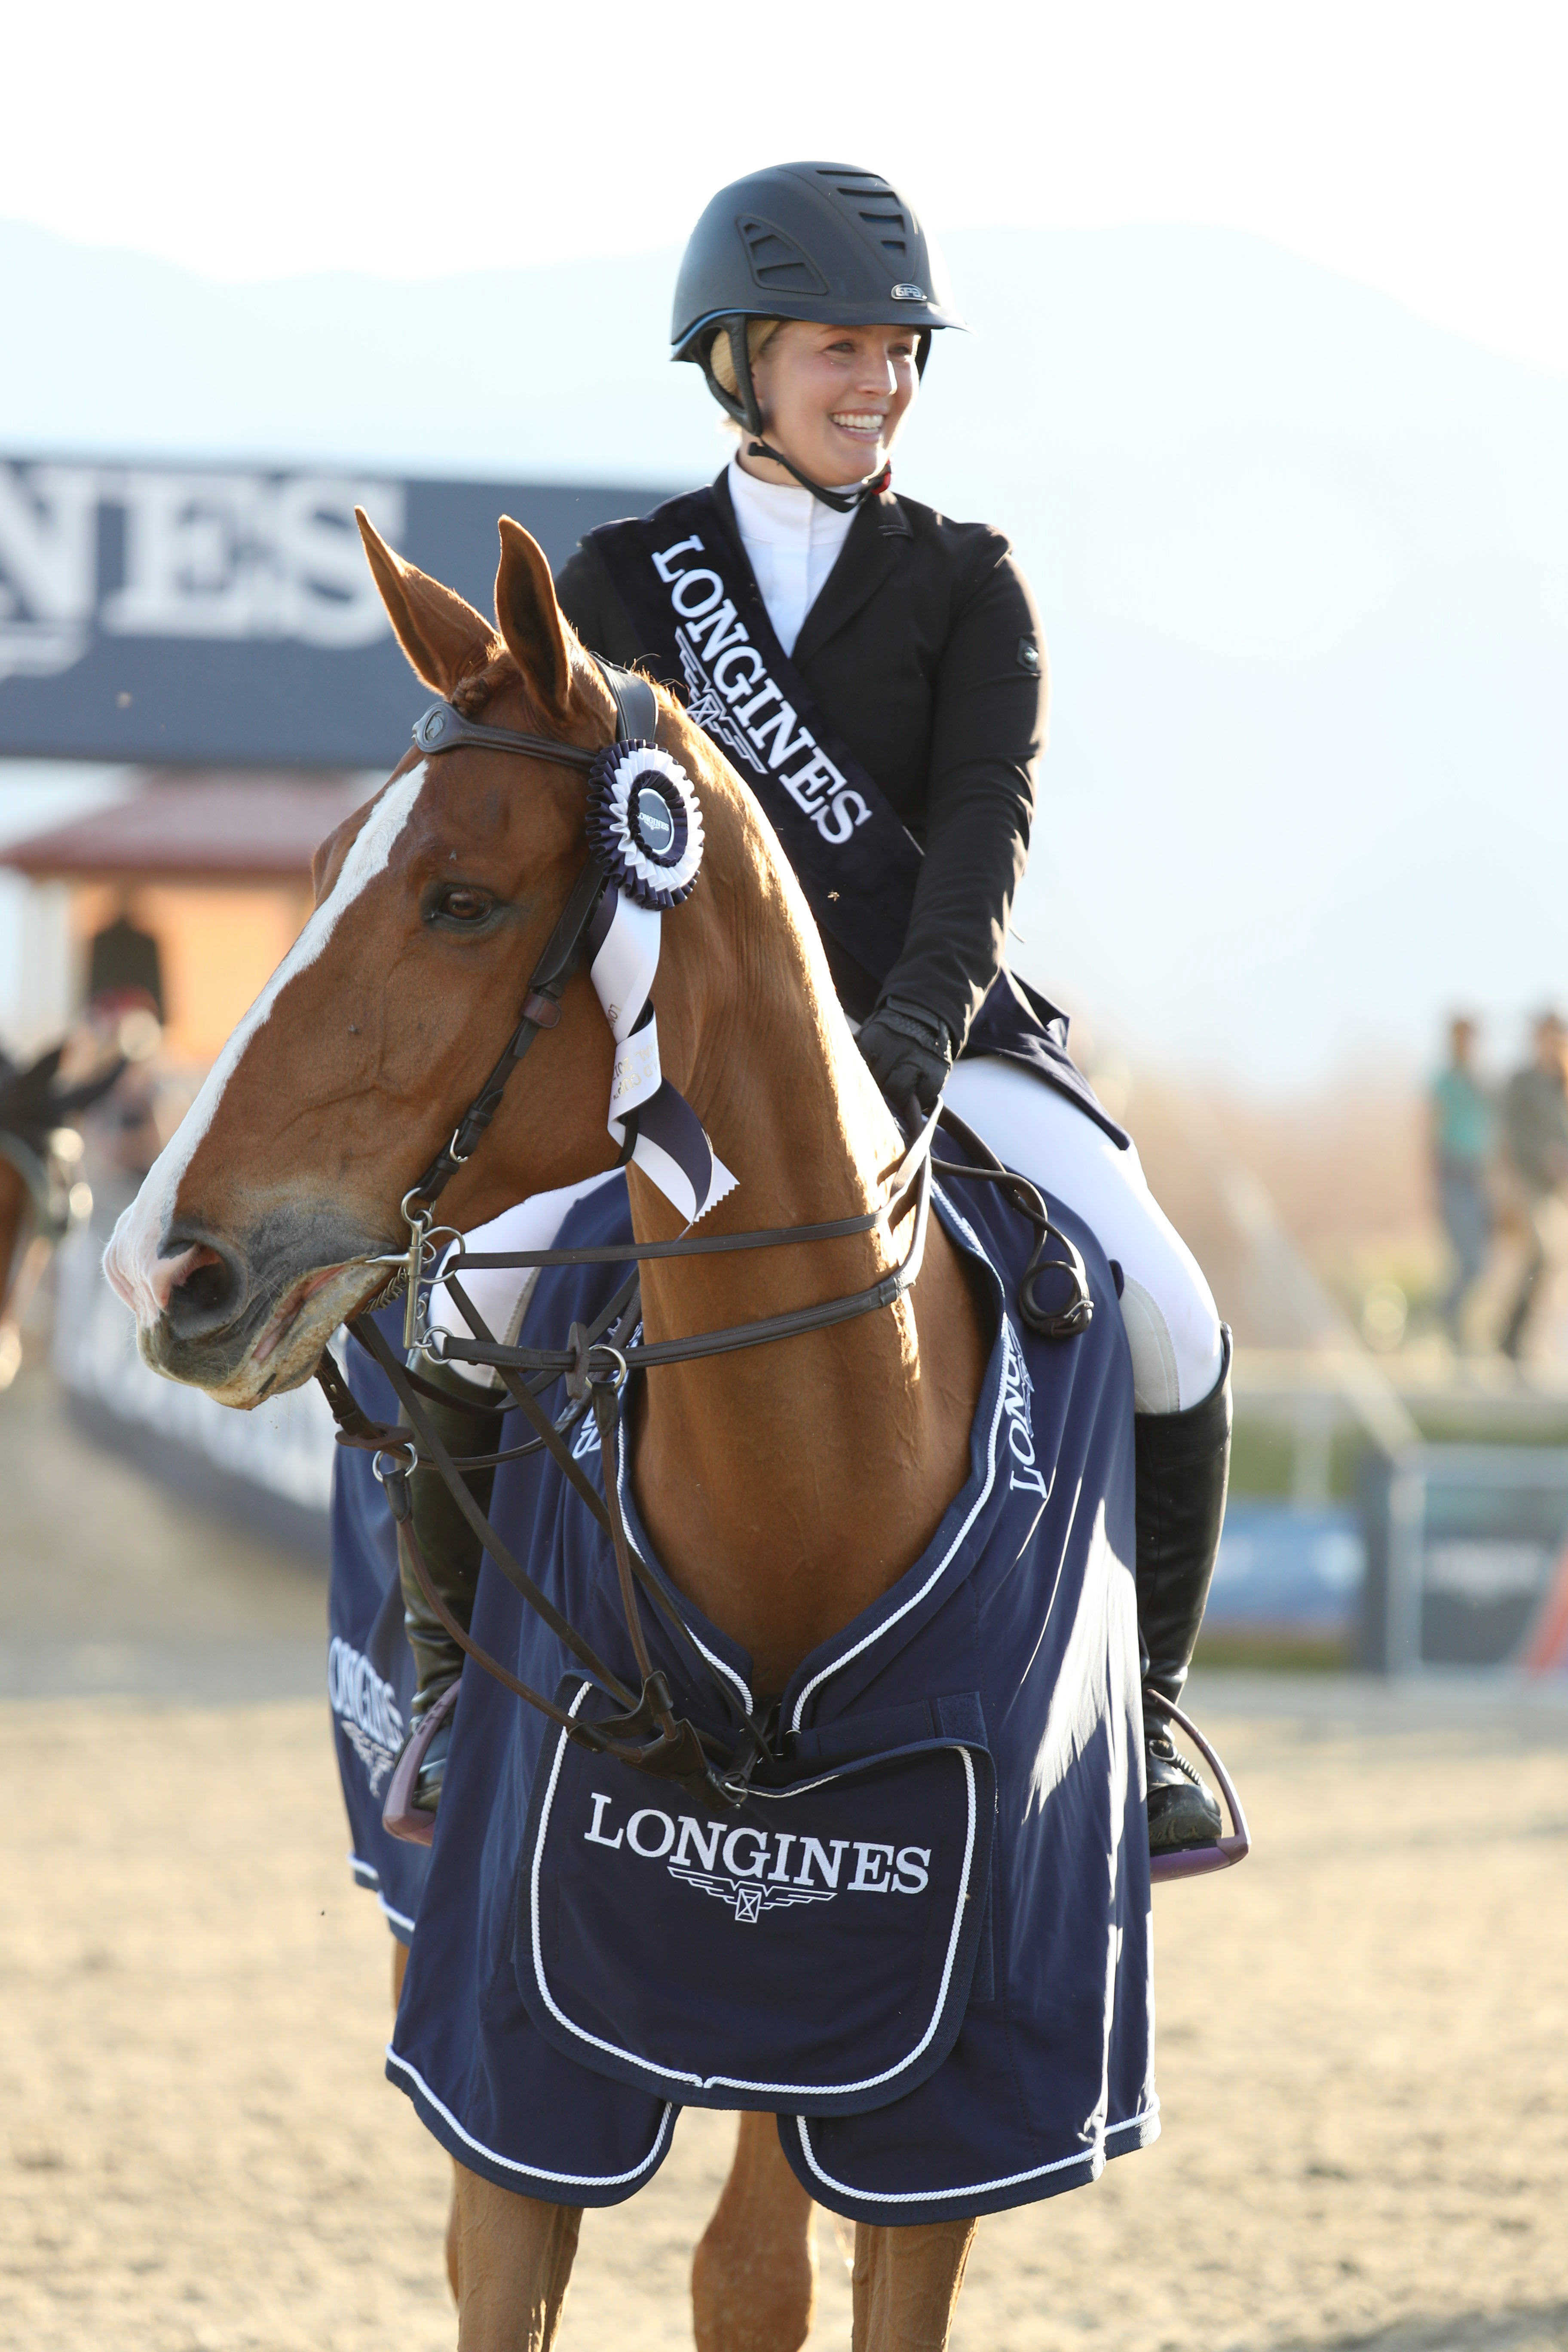 Chela LS ridden by Ashlee Bond (USA) at the Longines FEI World Cup™ Jumping North America league, Thermal. © Kristin Lee/FEI